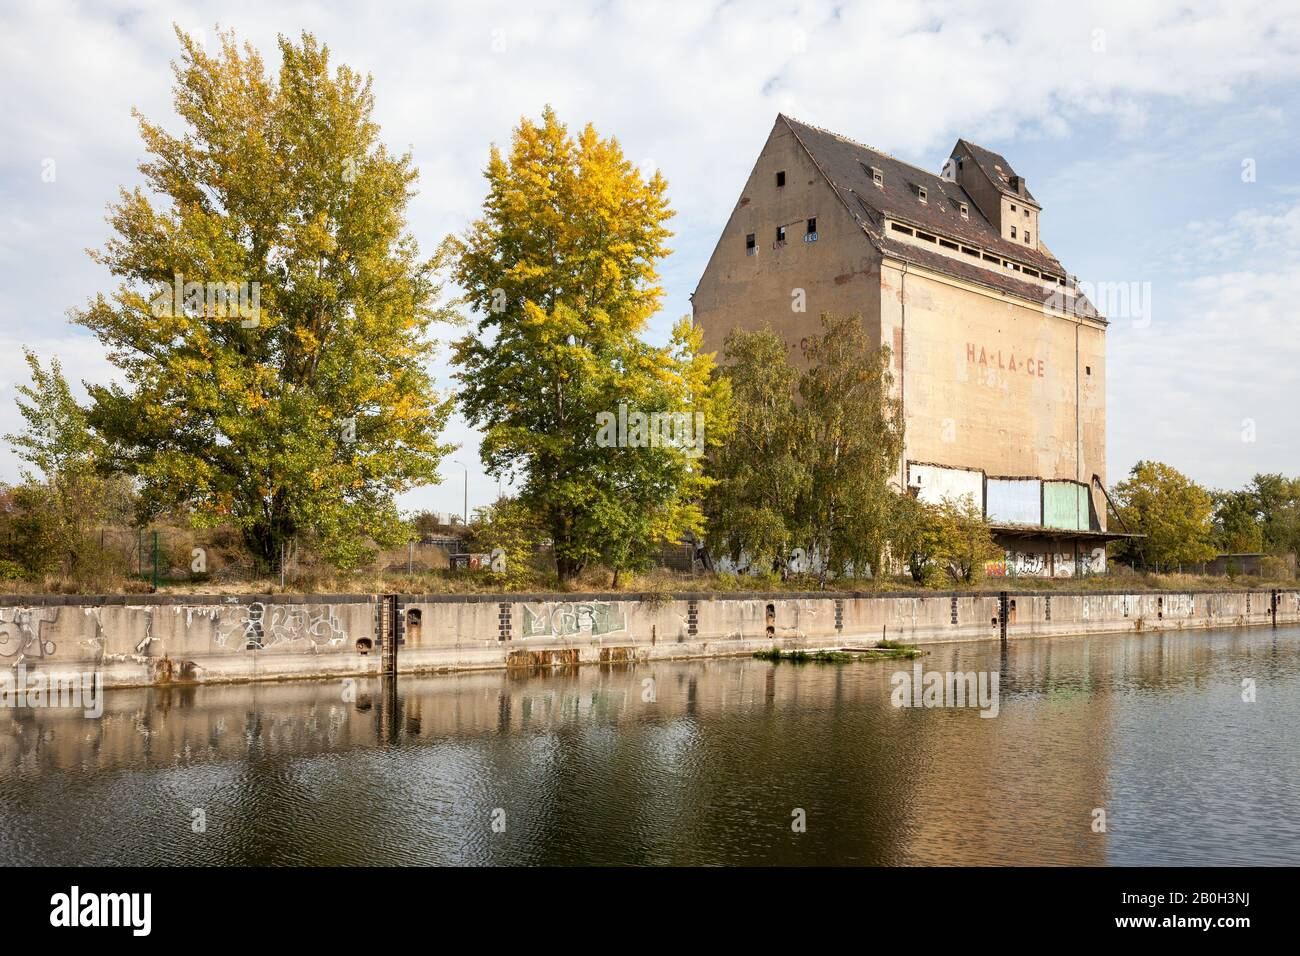 06.10.2018, Leipzig, Saxony, Germany - Ruins of the grain silo of Hafen-Lagerhaus-Gesellschaft HA-LA-GE at Lindenauer Hafen in Leipzig-Lindenau. 00P18 Stock Photo